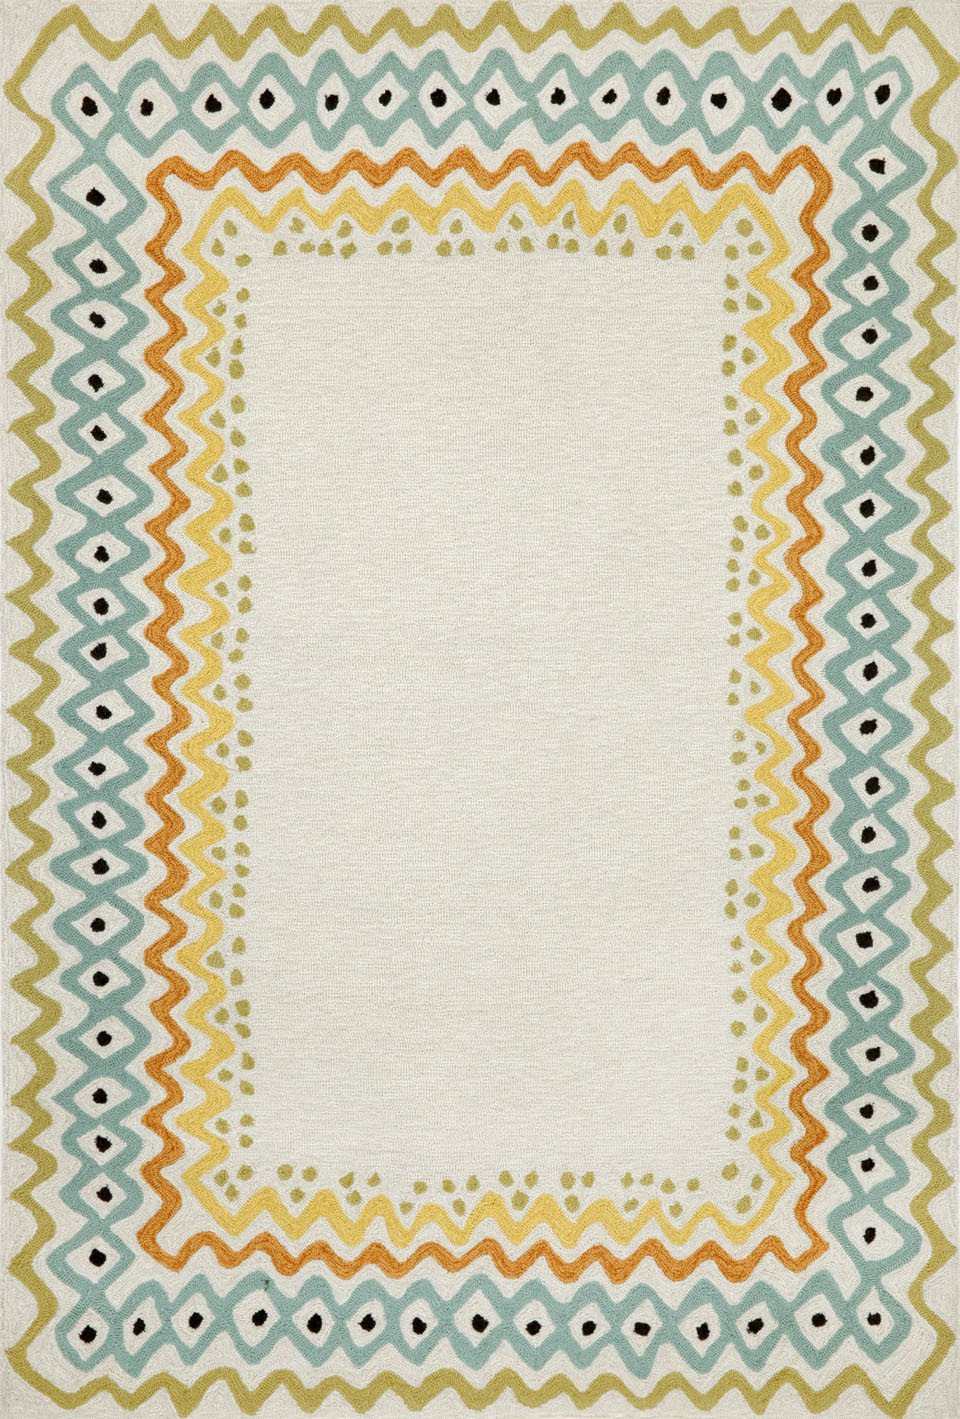 Trans-Ocean Imports CAP71160712 Capri Collection Natural Finish Everywear Rug from Trans-Ocean